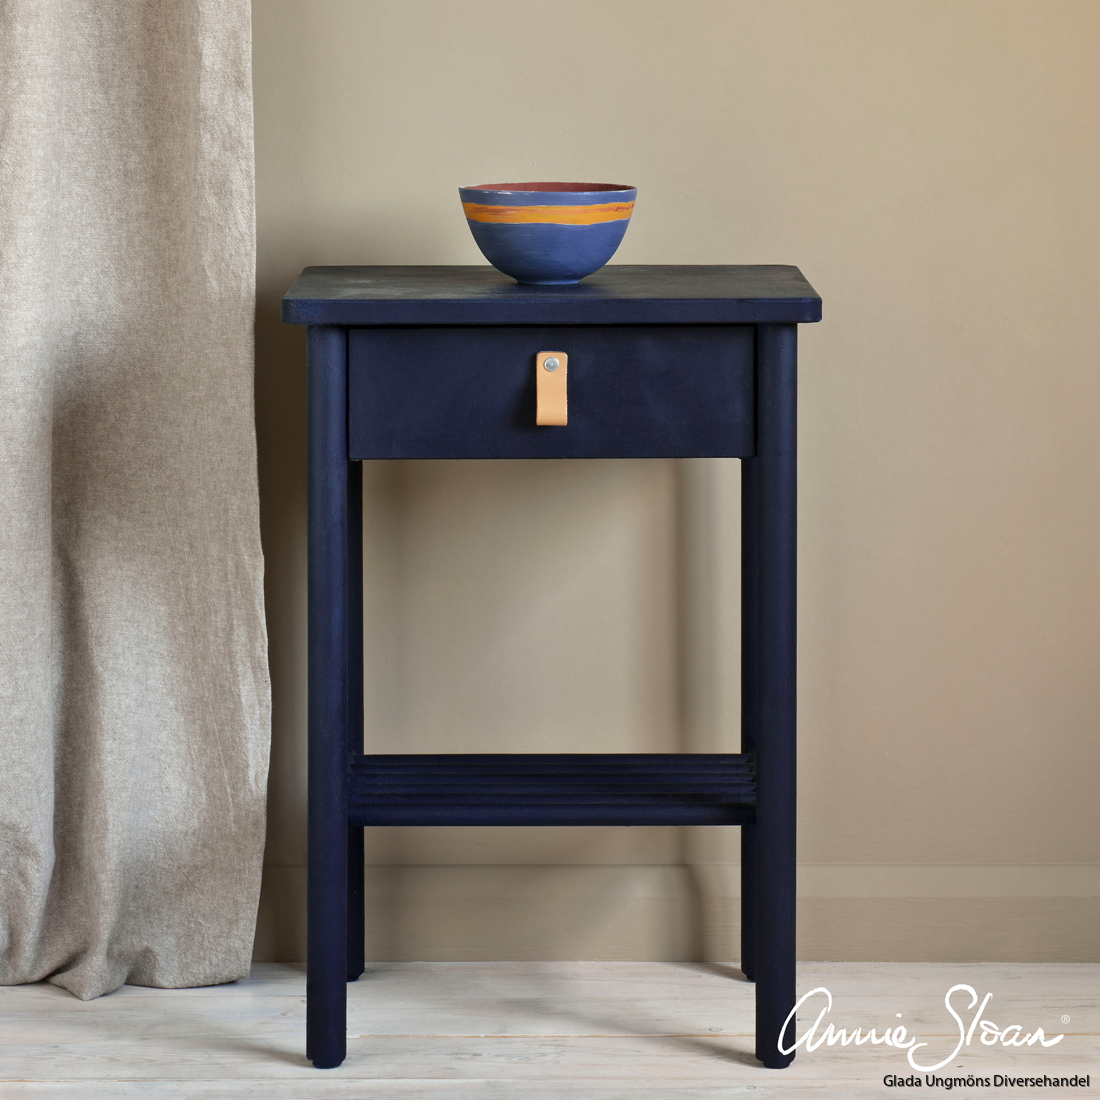 Oxford-Navy-side-table,-curtain-in-Linen-Union-in-Old-White-+-French-Linen,-lamp-base-in-Old-Violet,-lampshade-in-Ticking-in-Old-Violet-image-2